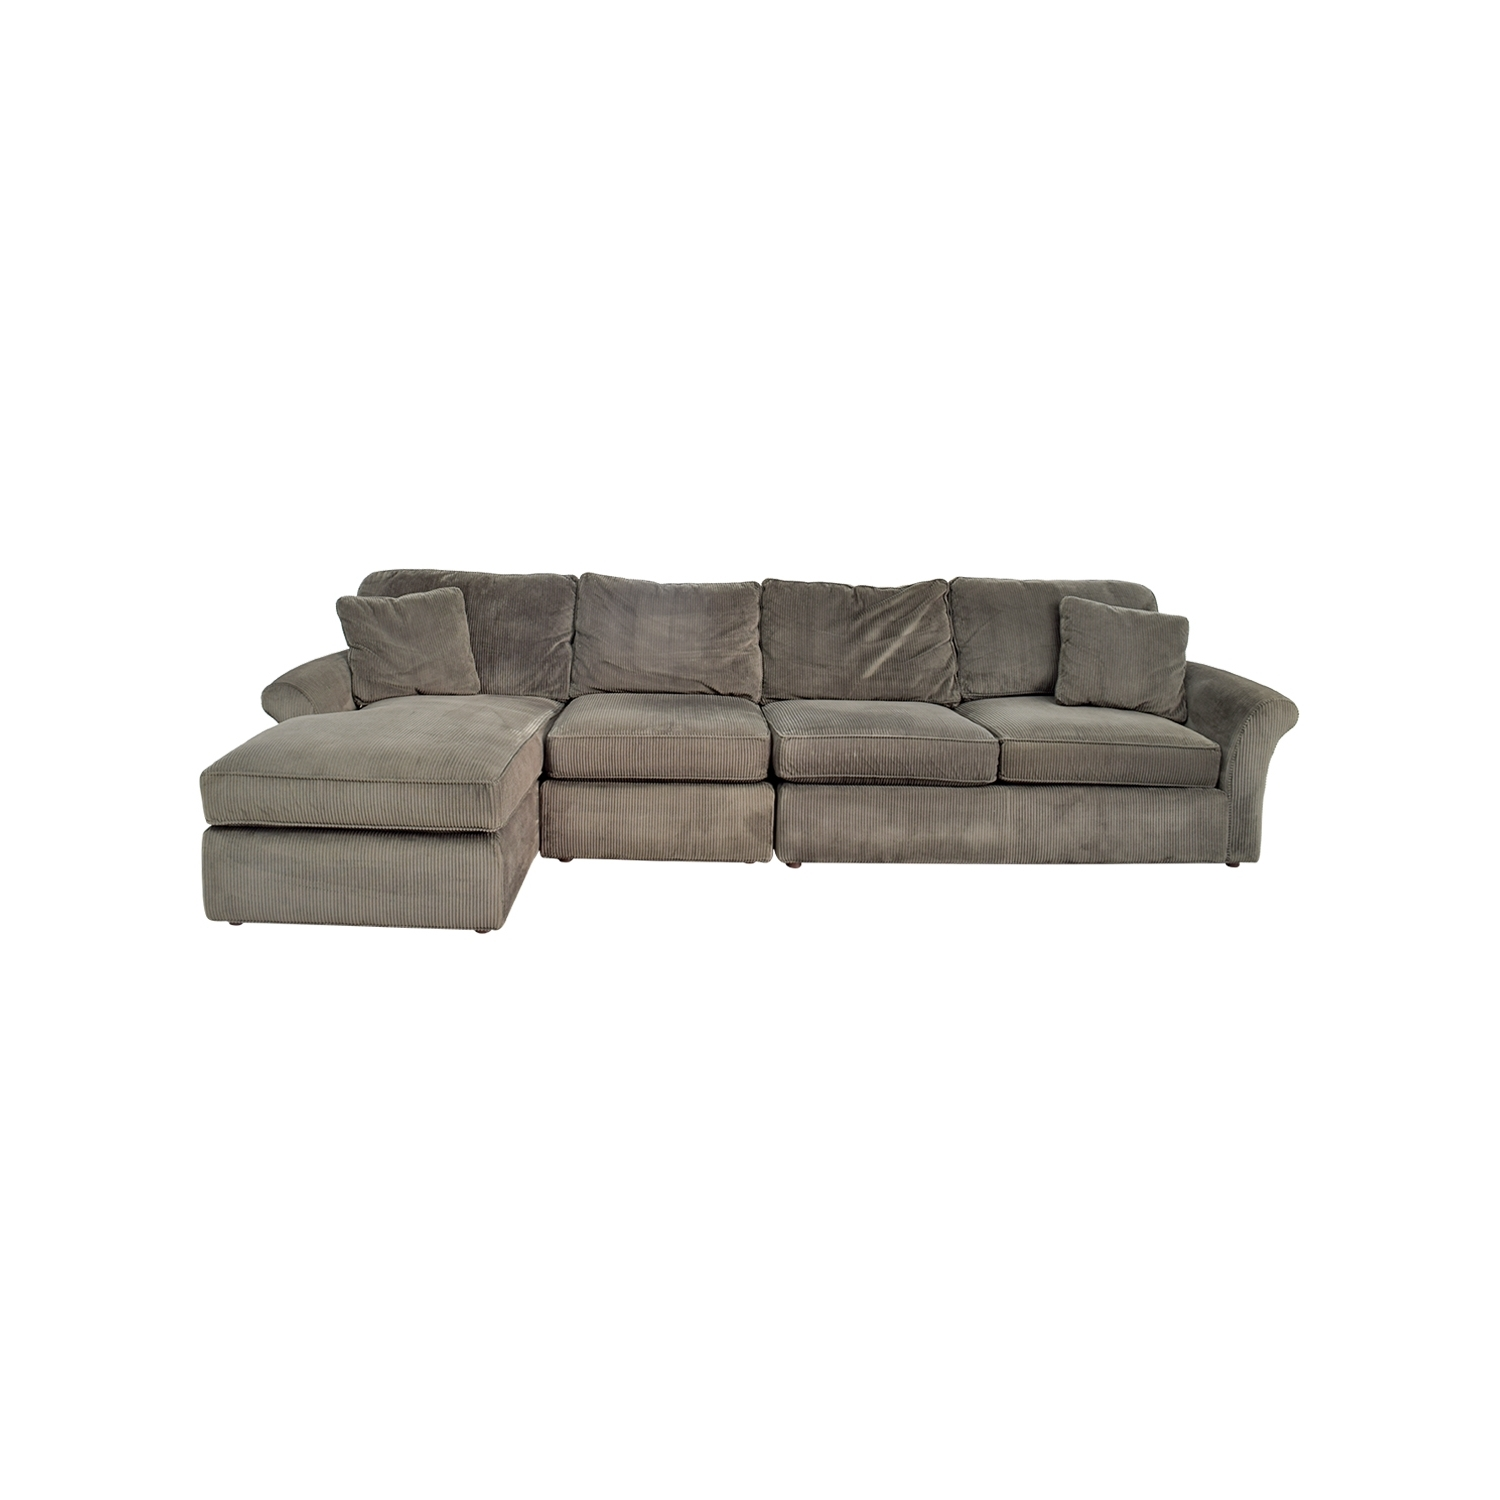 [%74% Off – Macy's Macy's Modern Concepts Charcoal Gray Corduroy For Most Up To Date Nj Sectional Sofas|Nj Sectional Sofas Pertaining To Trendy 74% Off – Macy's Macy's Modern Concepts Charcoal Gray Corduroy|Best And Newest Nj Sectional Sofas For 74% Off – Macy's Macy's Modern Concepts Charcoal Gray Corduroy|Best And Newest 74% Off – Macy's Macy's Modern Concepts Charcoal Gray Corduroy Within Nj Sectional Sofas%] (View 1 of 20)